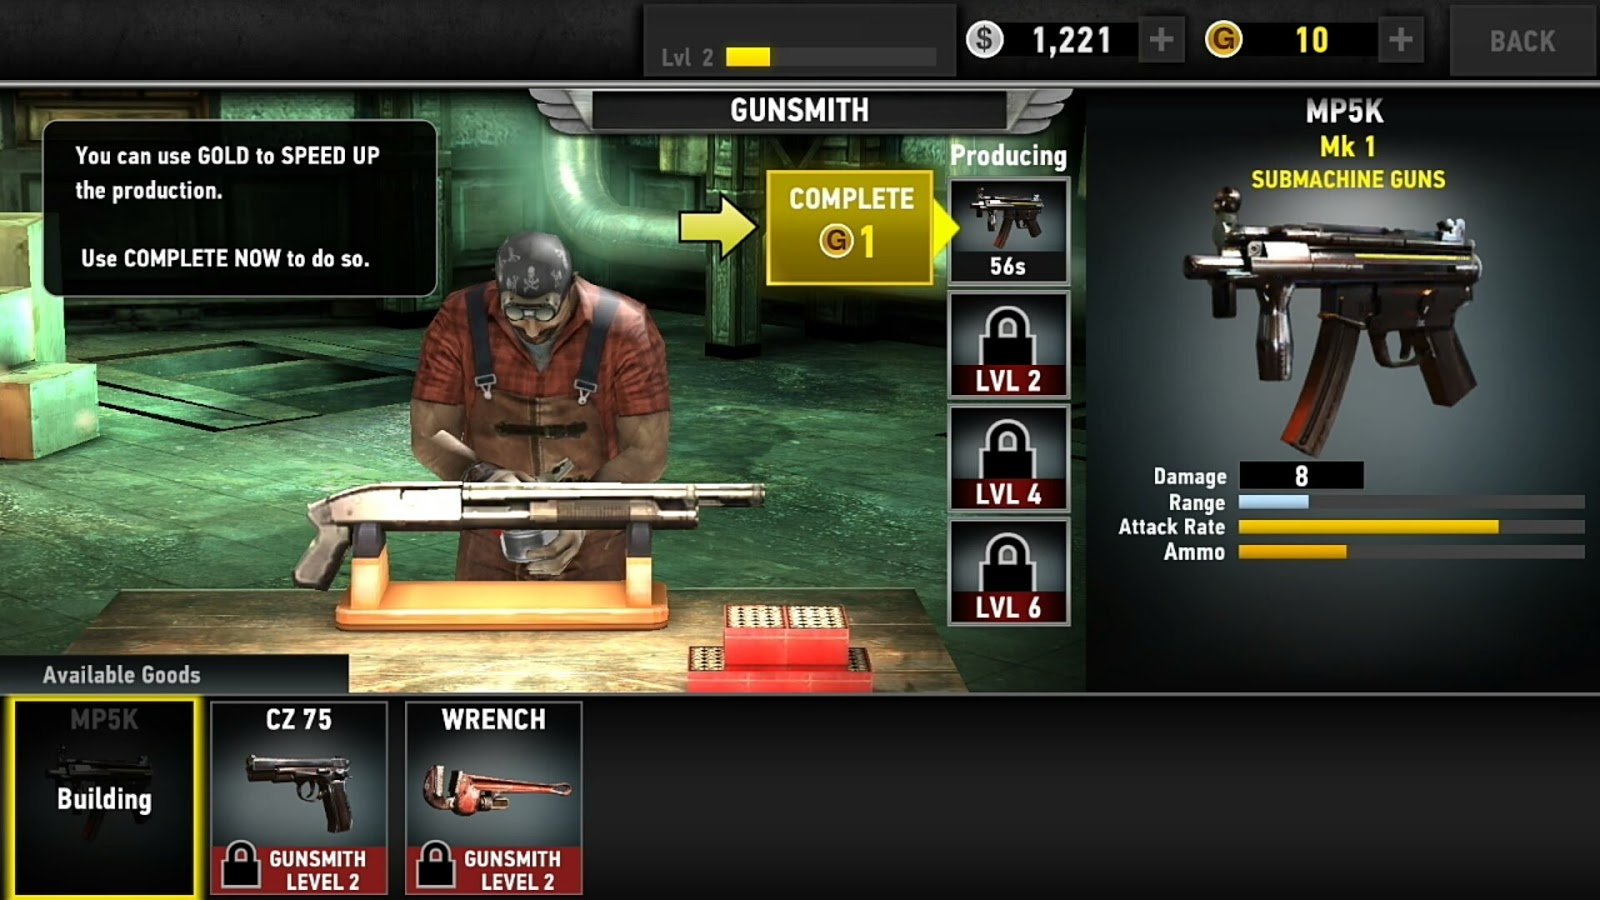 Dead trigger 2letest version 131 modhack apk unlimited ammo dead trigger 2 mod malvernweather Choice Image